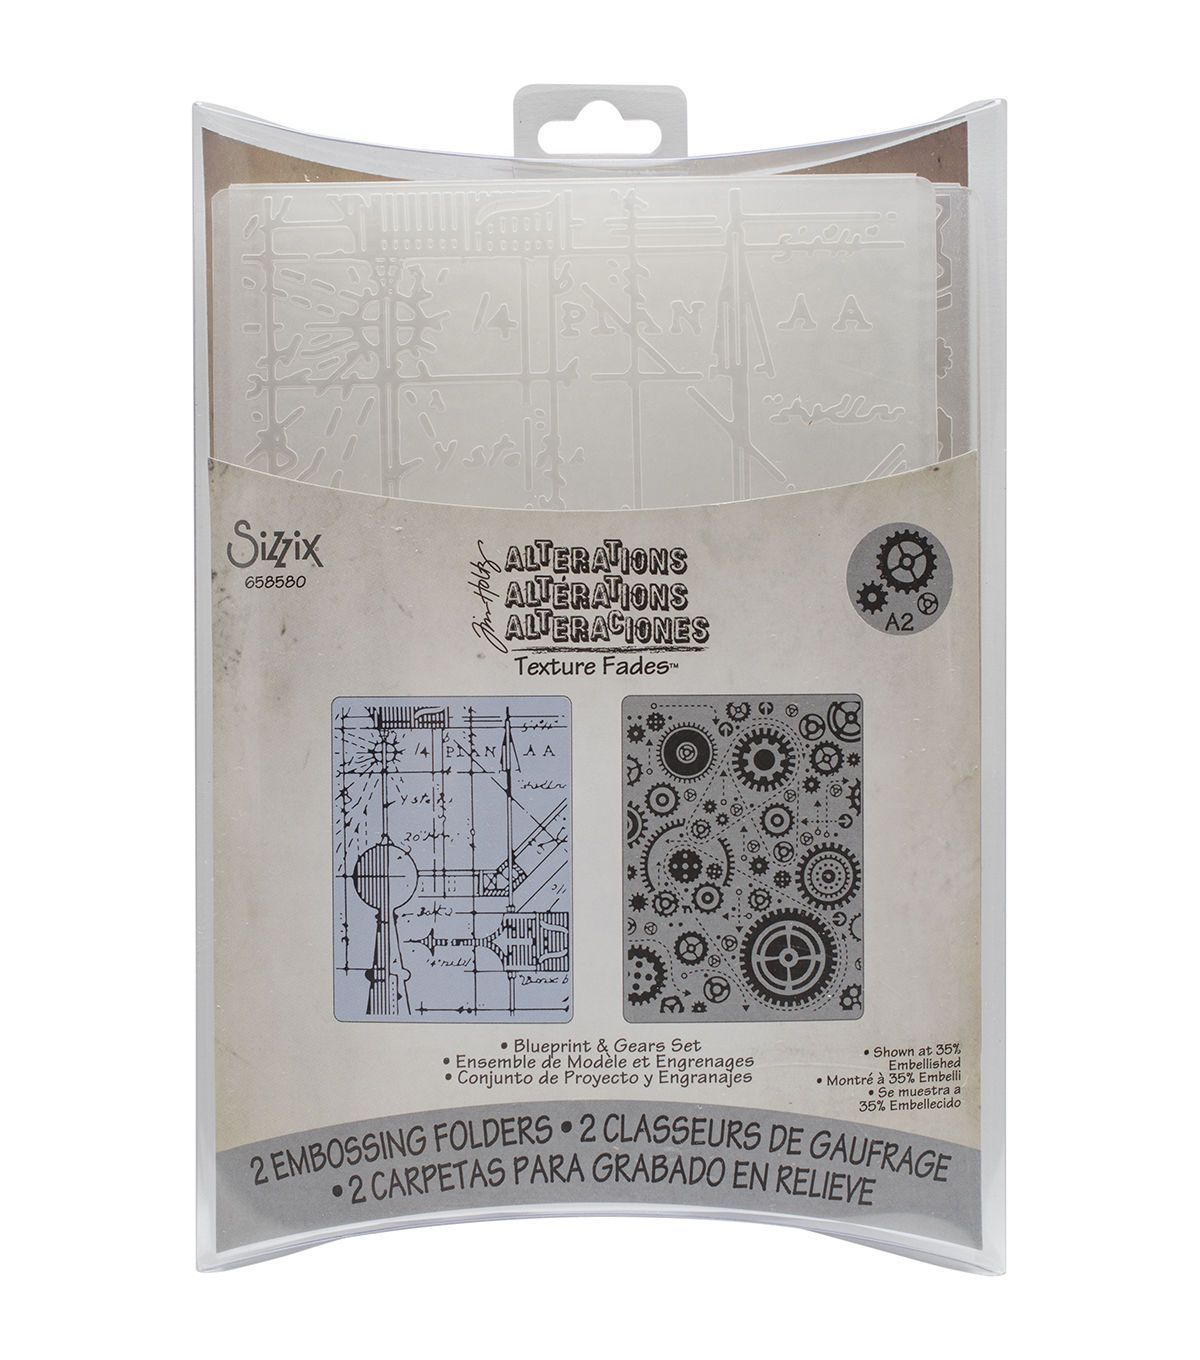 Sizzix174 texture fades8482 a2 embossing folders blueprint sizzix texture fades a2 embossing folders blueprint gears malvernweather Choice Image